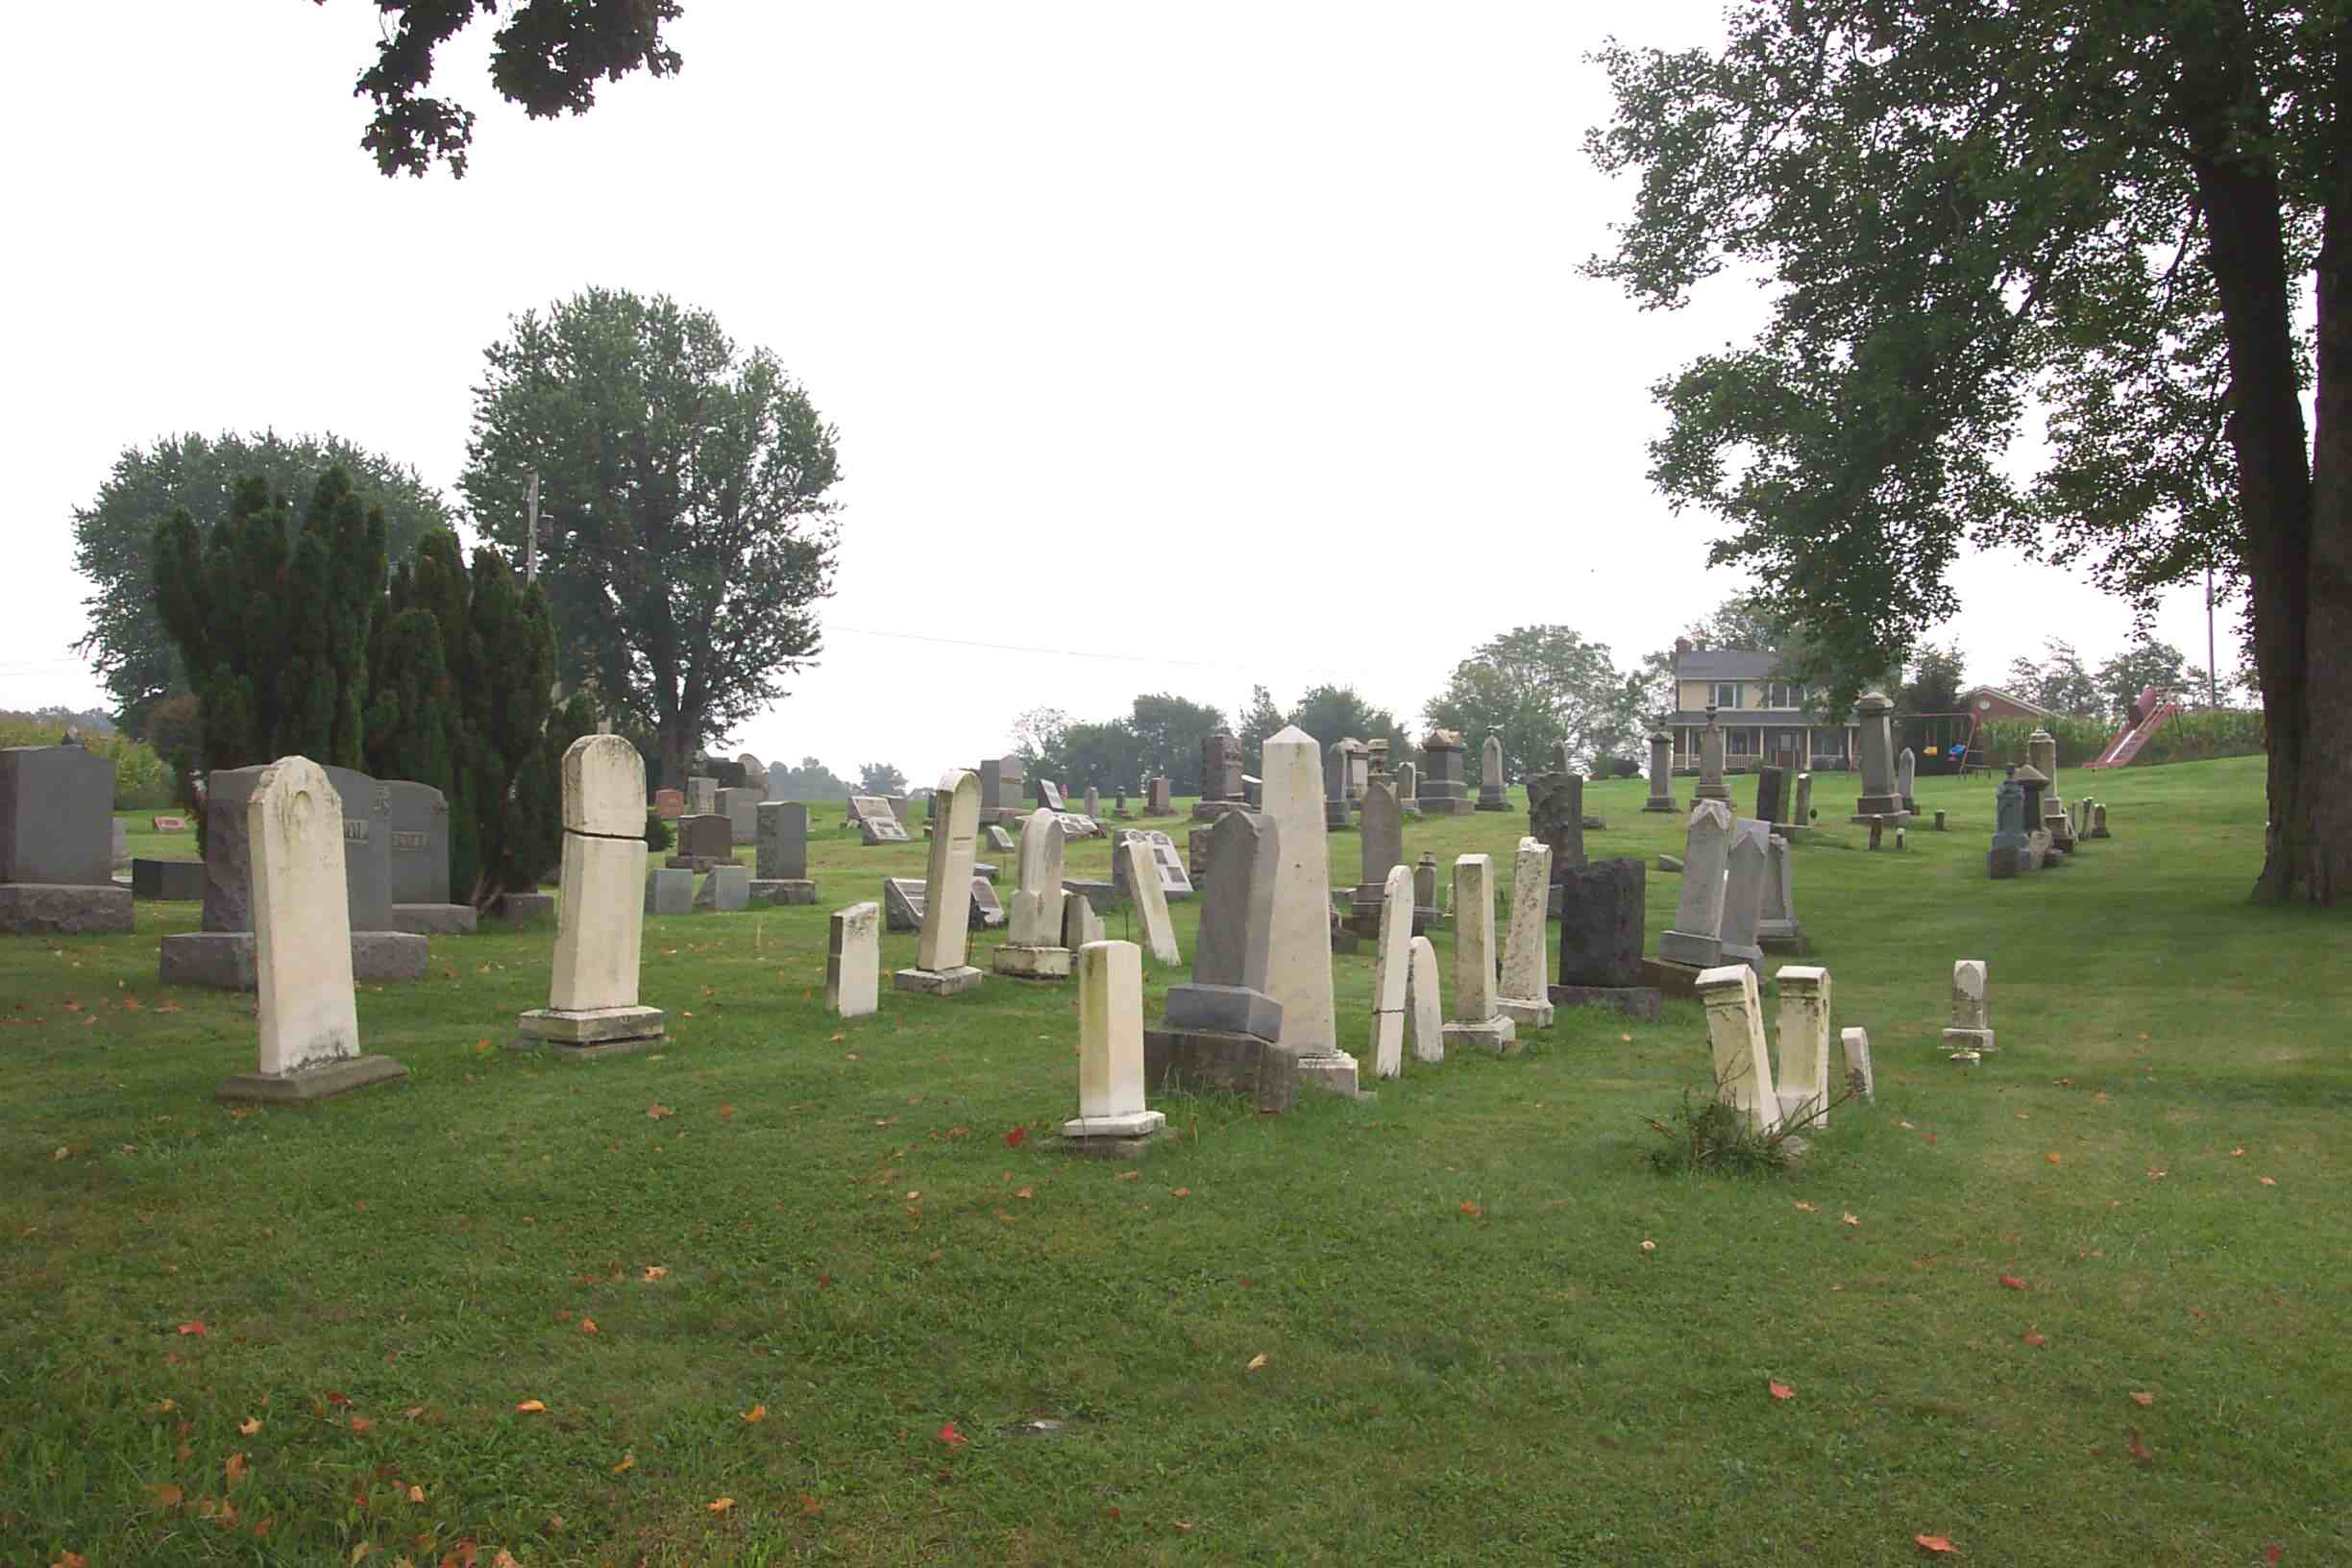 Werner Chapel Cemetery